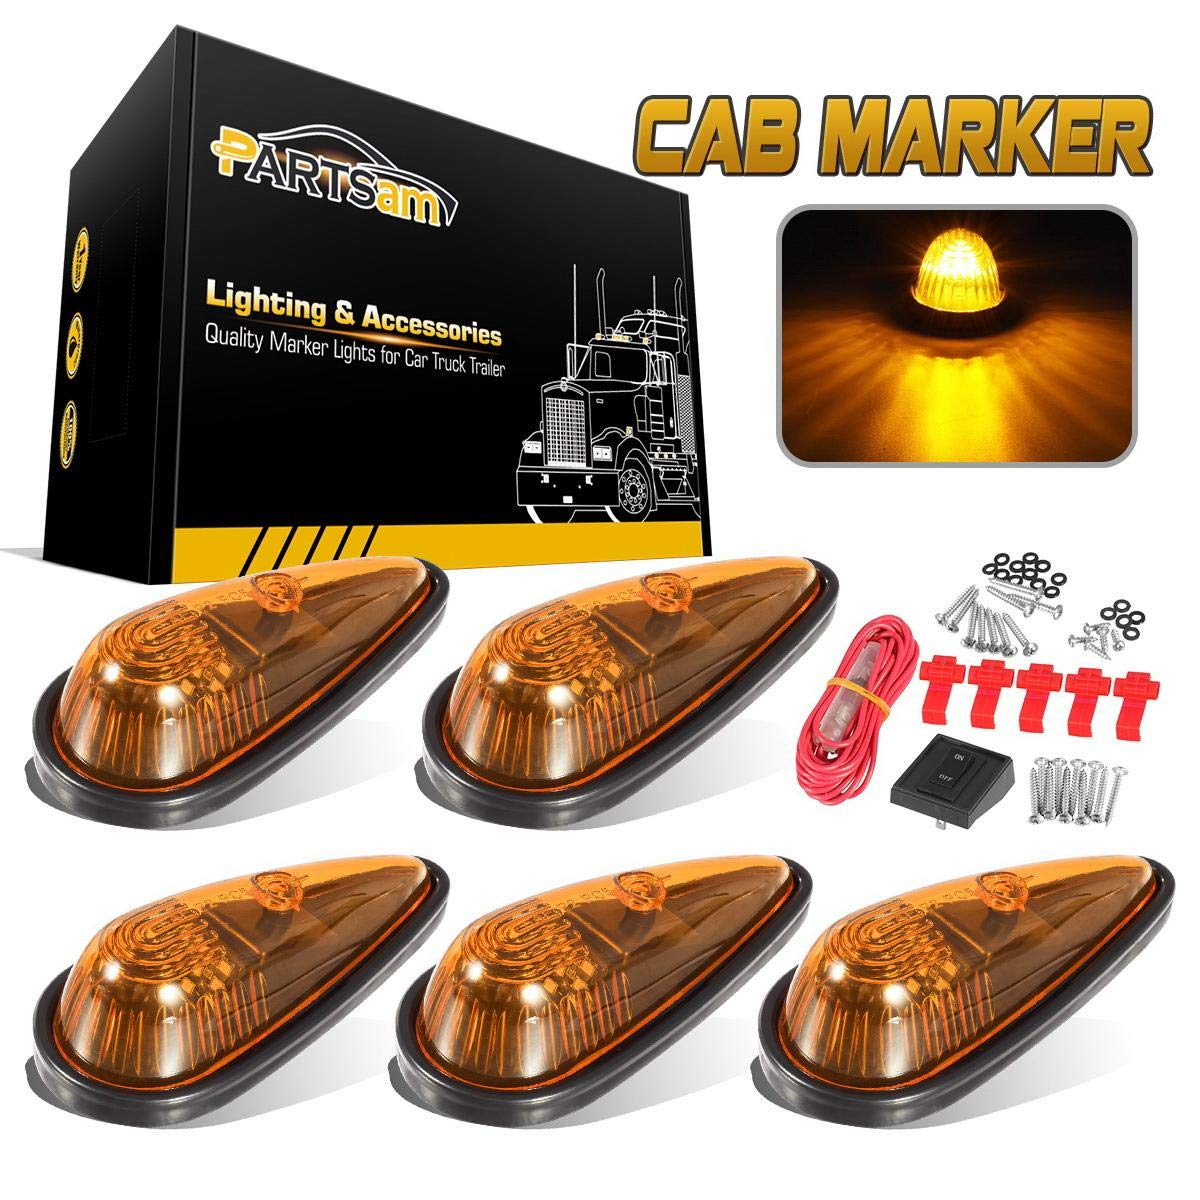 CZC AUTO 5 Pack 5-1//2 inch Amber Teardrop Cab Clearance Marker Roof Running ID Light Kit with on//off Switch Front Rear Top-Mounted for Trailer Truck RV Pickup Semi Van Boat Camper Bus Sedan 10157